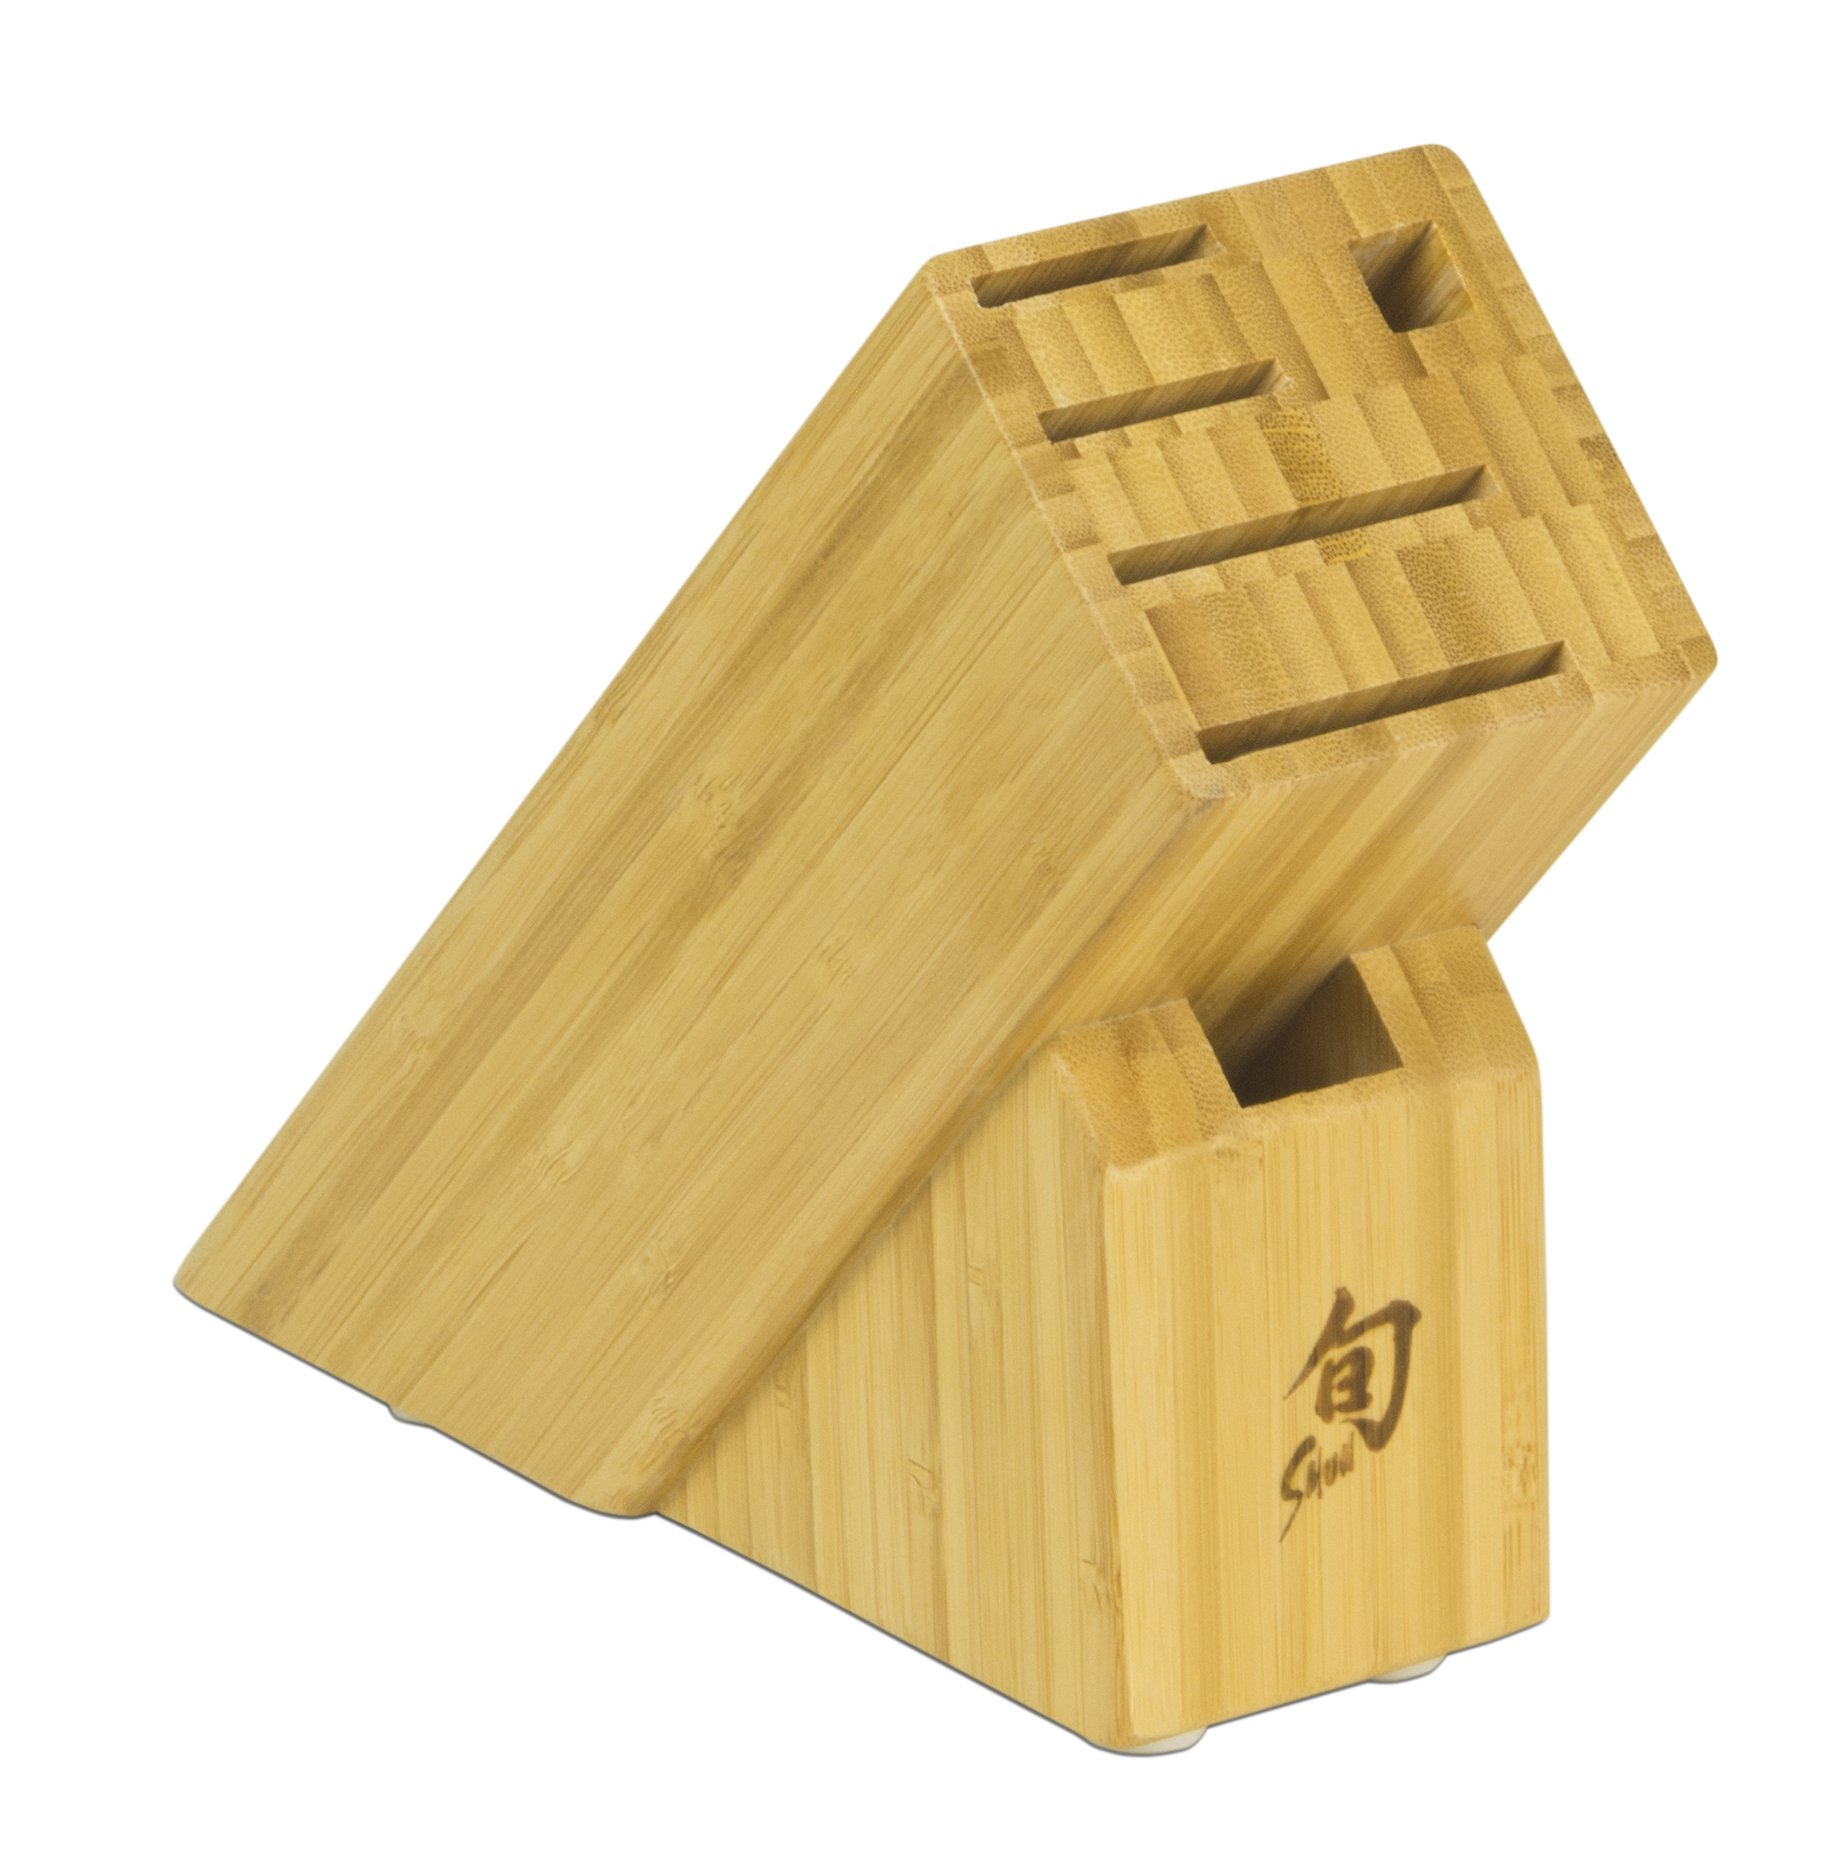 Shun DM0845 6-Slot Slimline Bamboo Knife Block 6, Brown